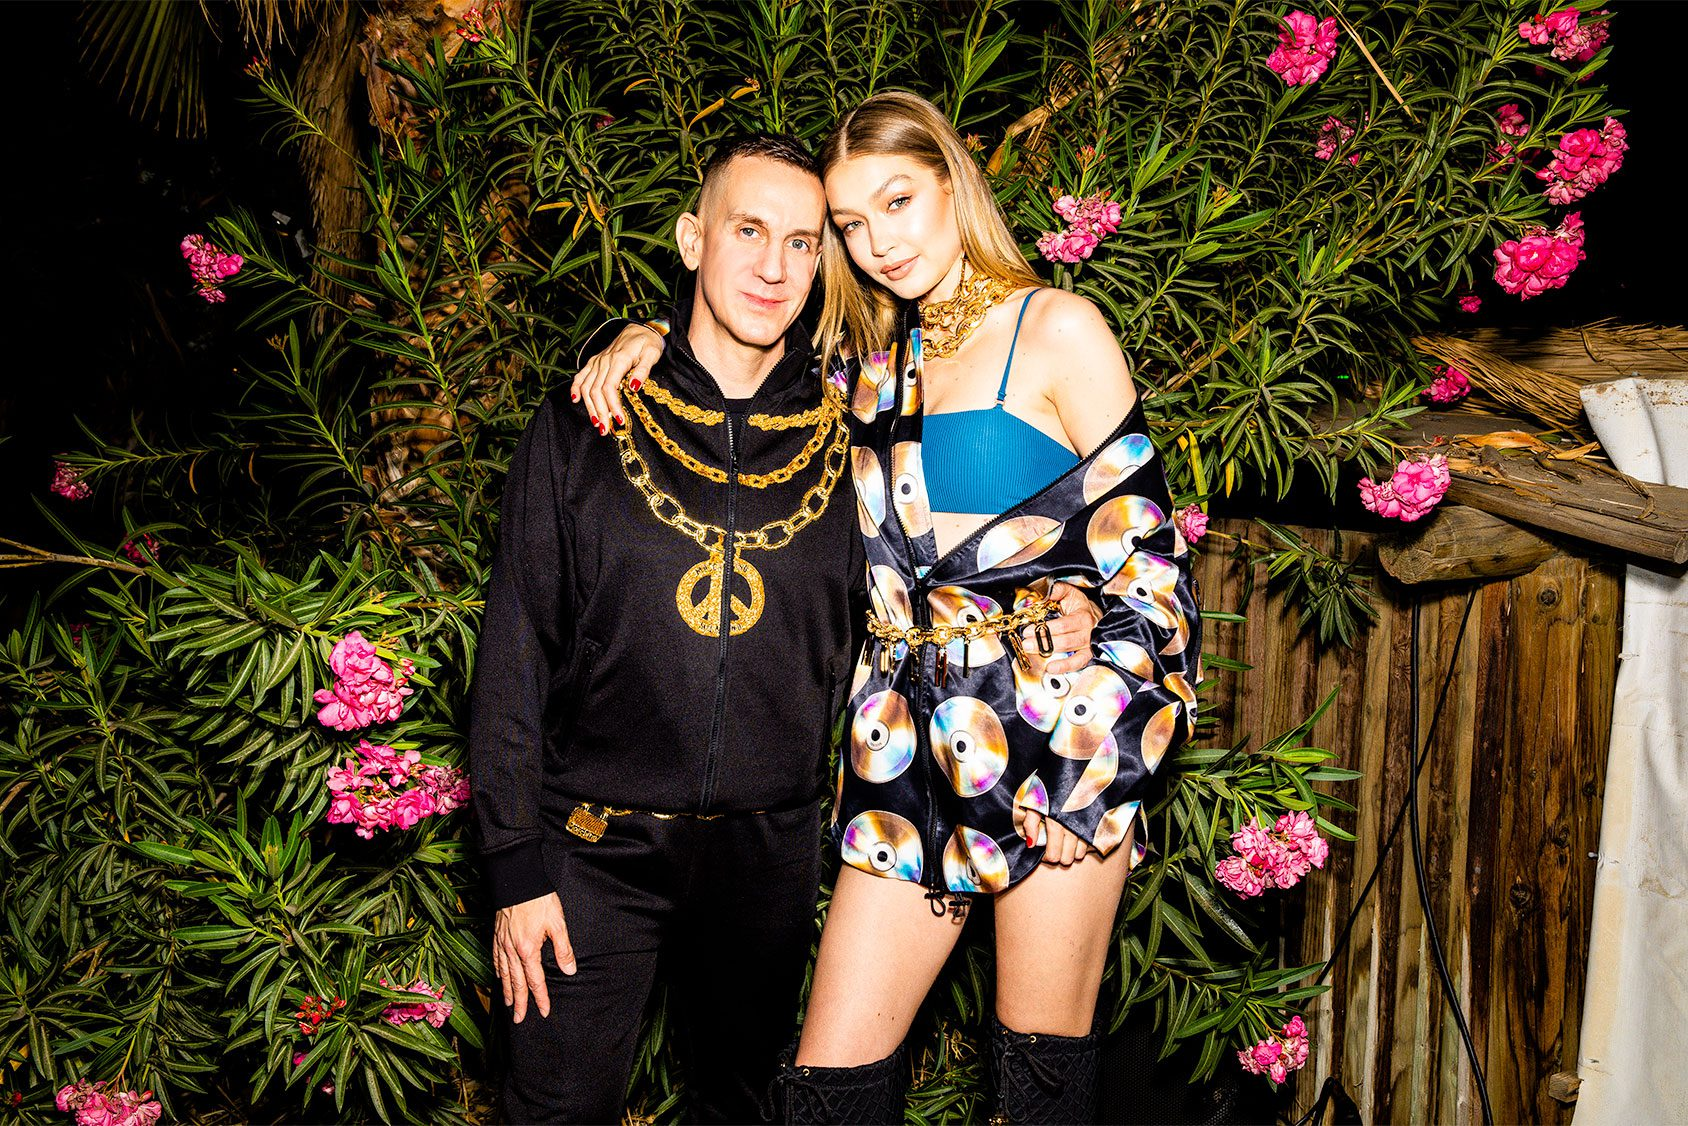 fdbc8caf13 H M x Moschino Collaboration Announced